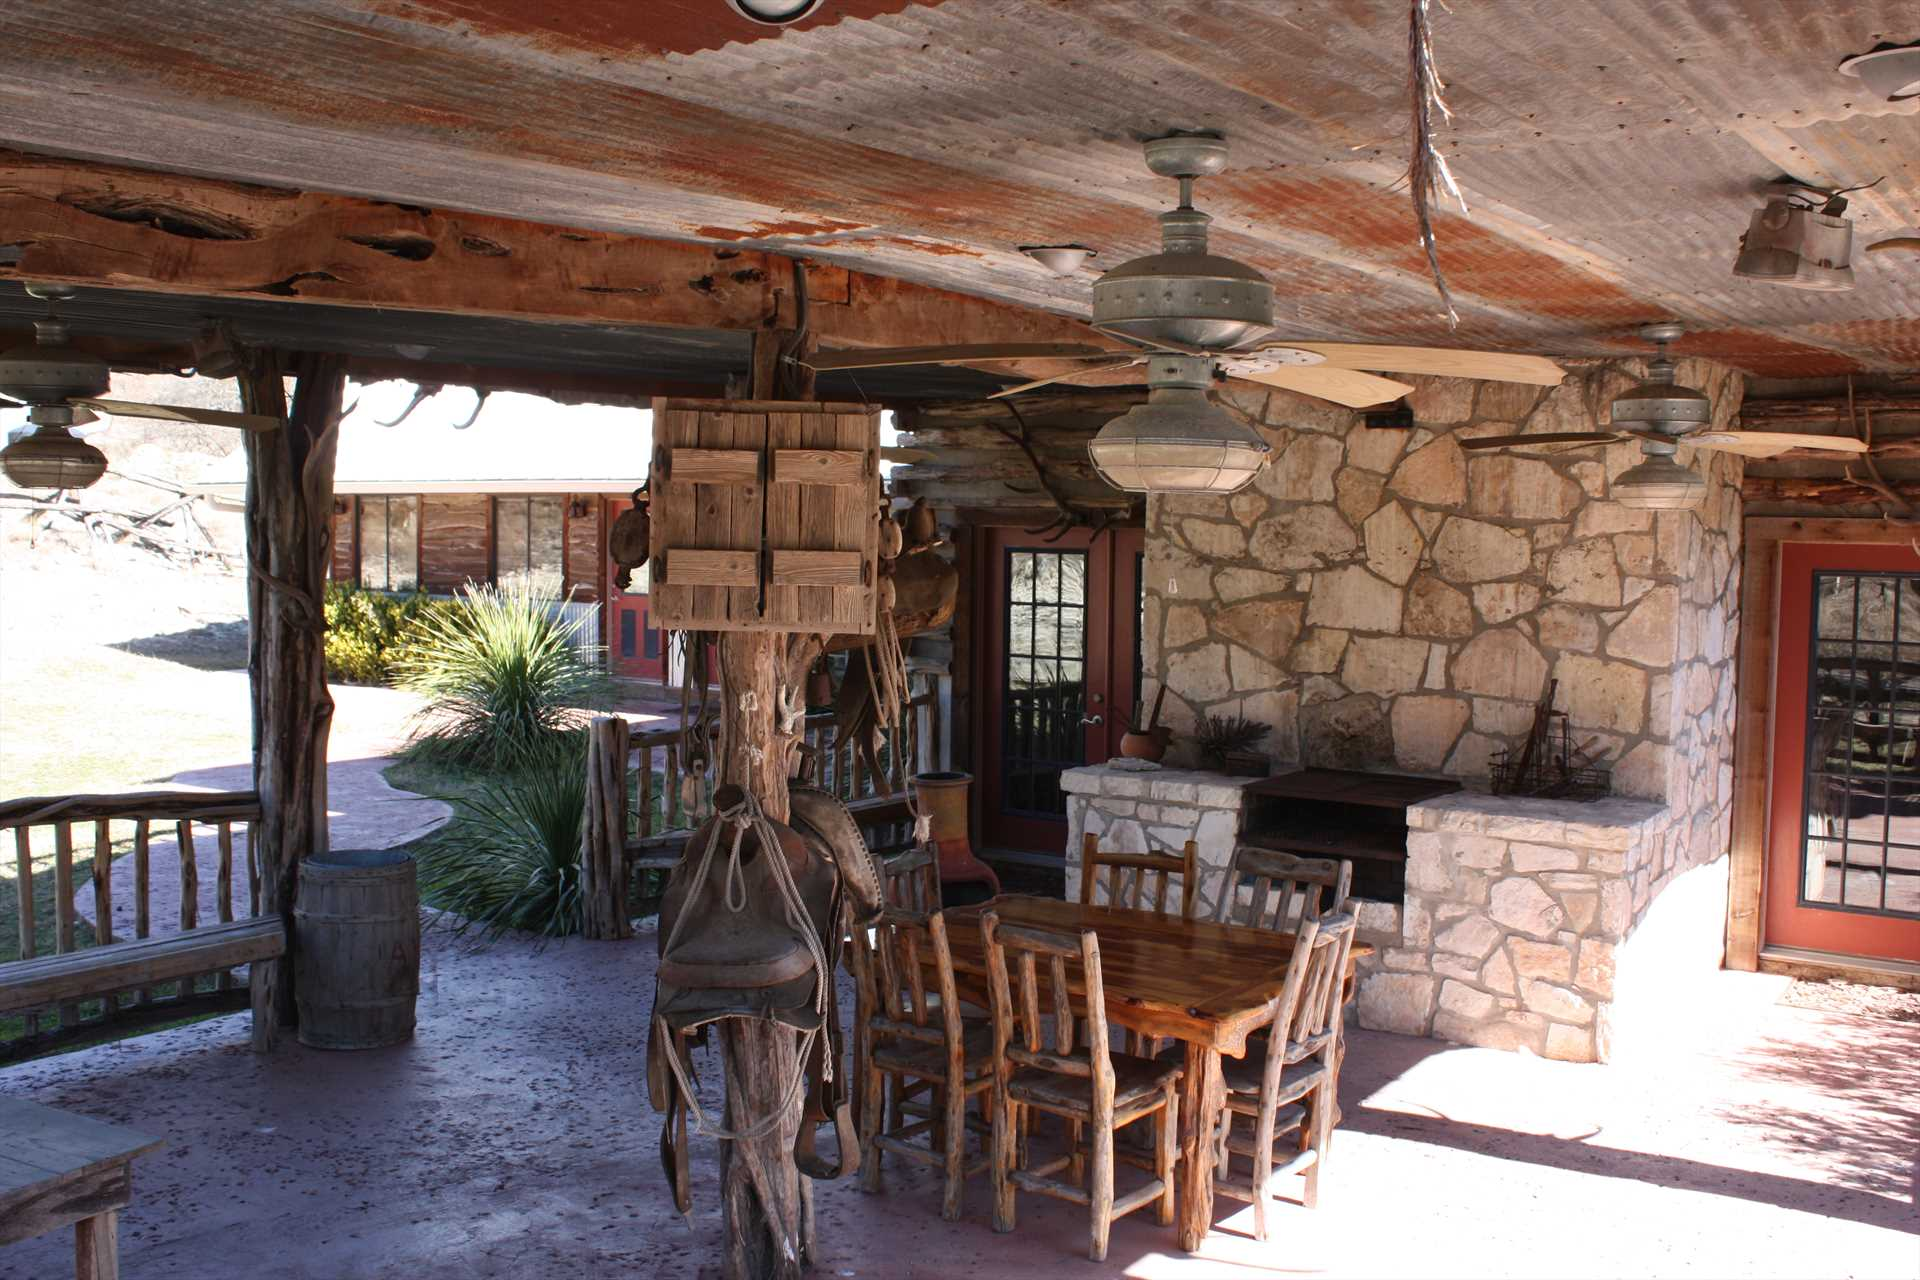 If there isn't a Hill Country breeze blowing, you can stir up your own with the ceiling fans on the lower patio.